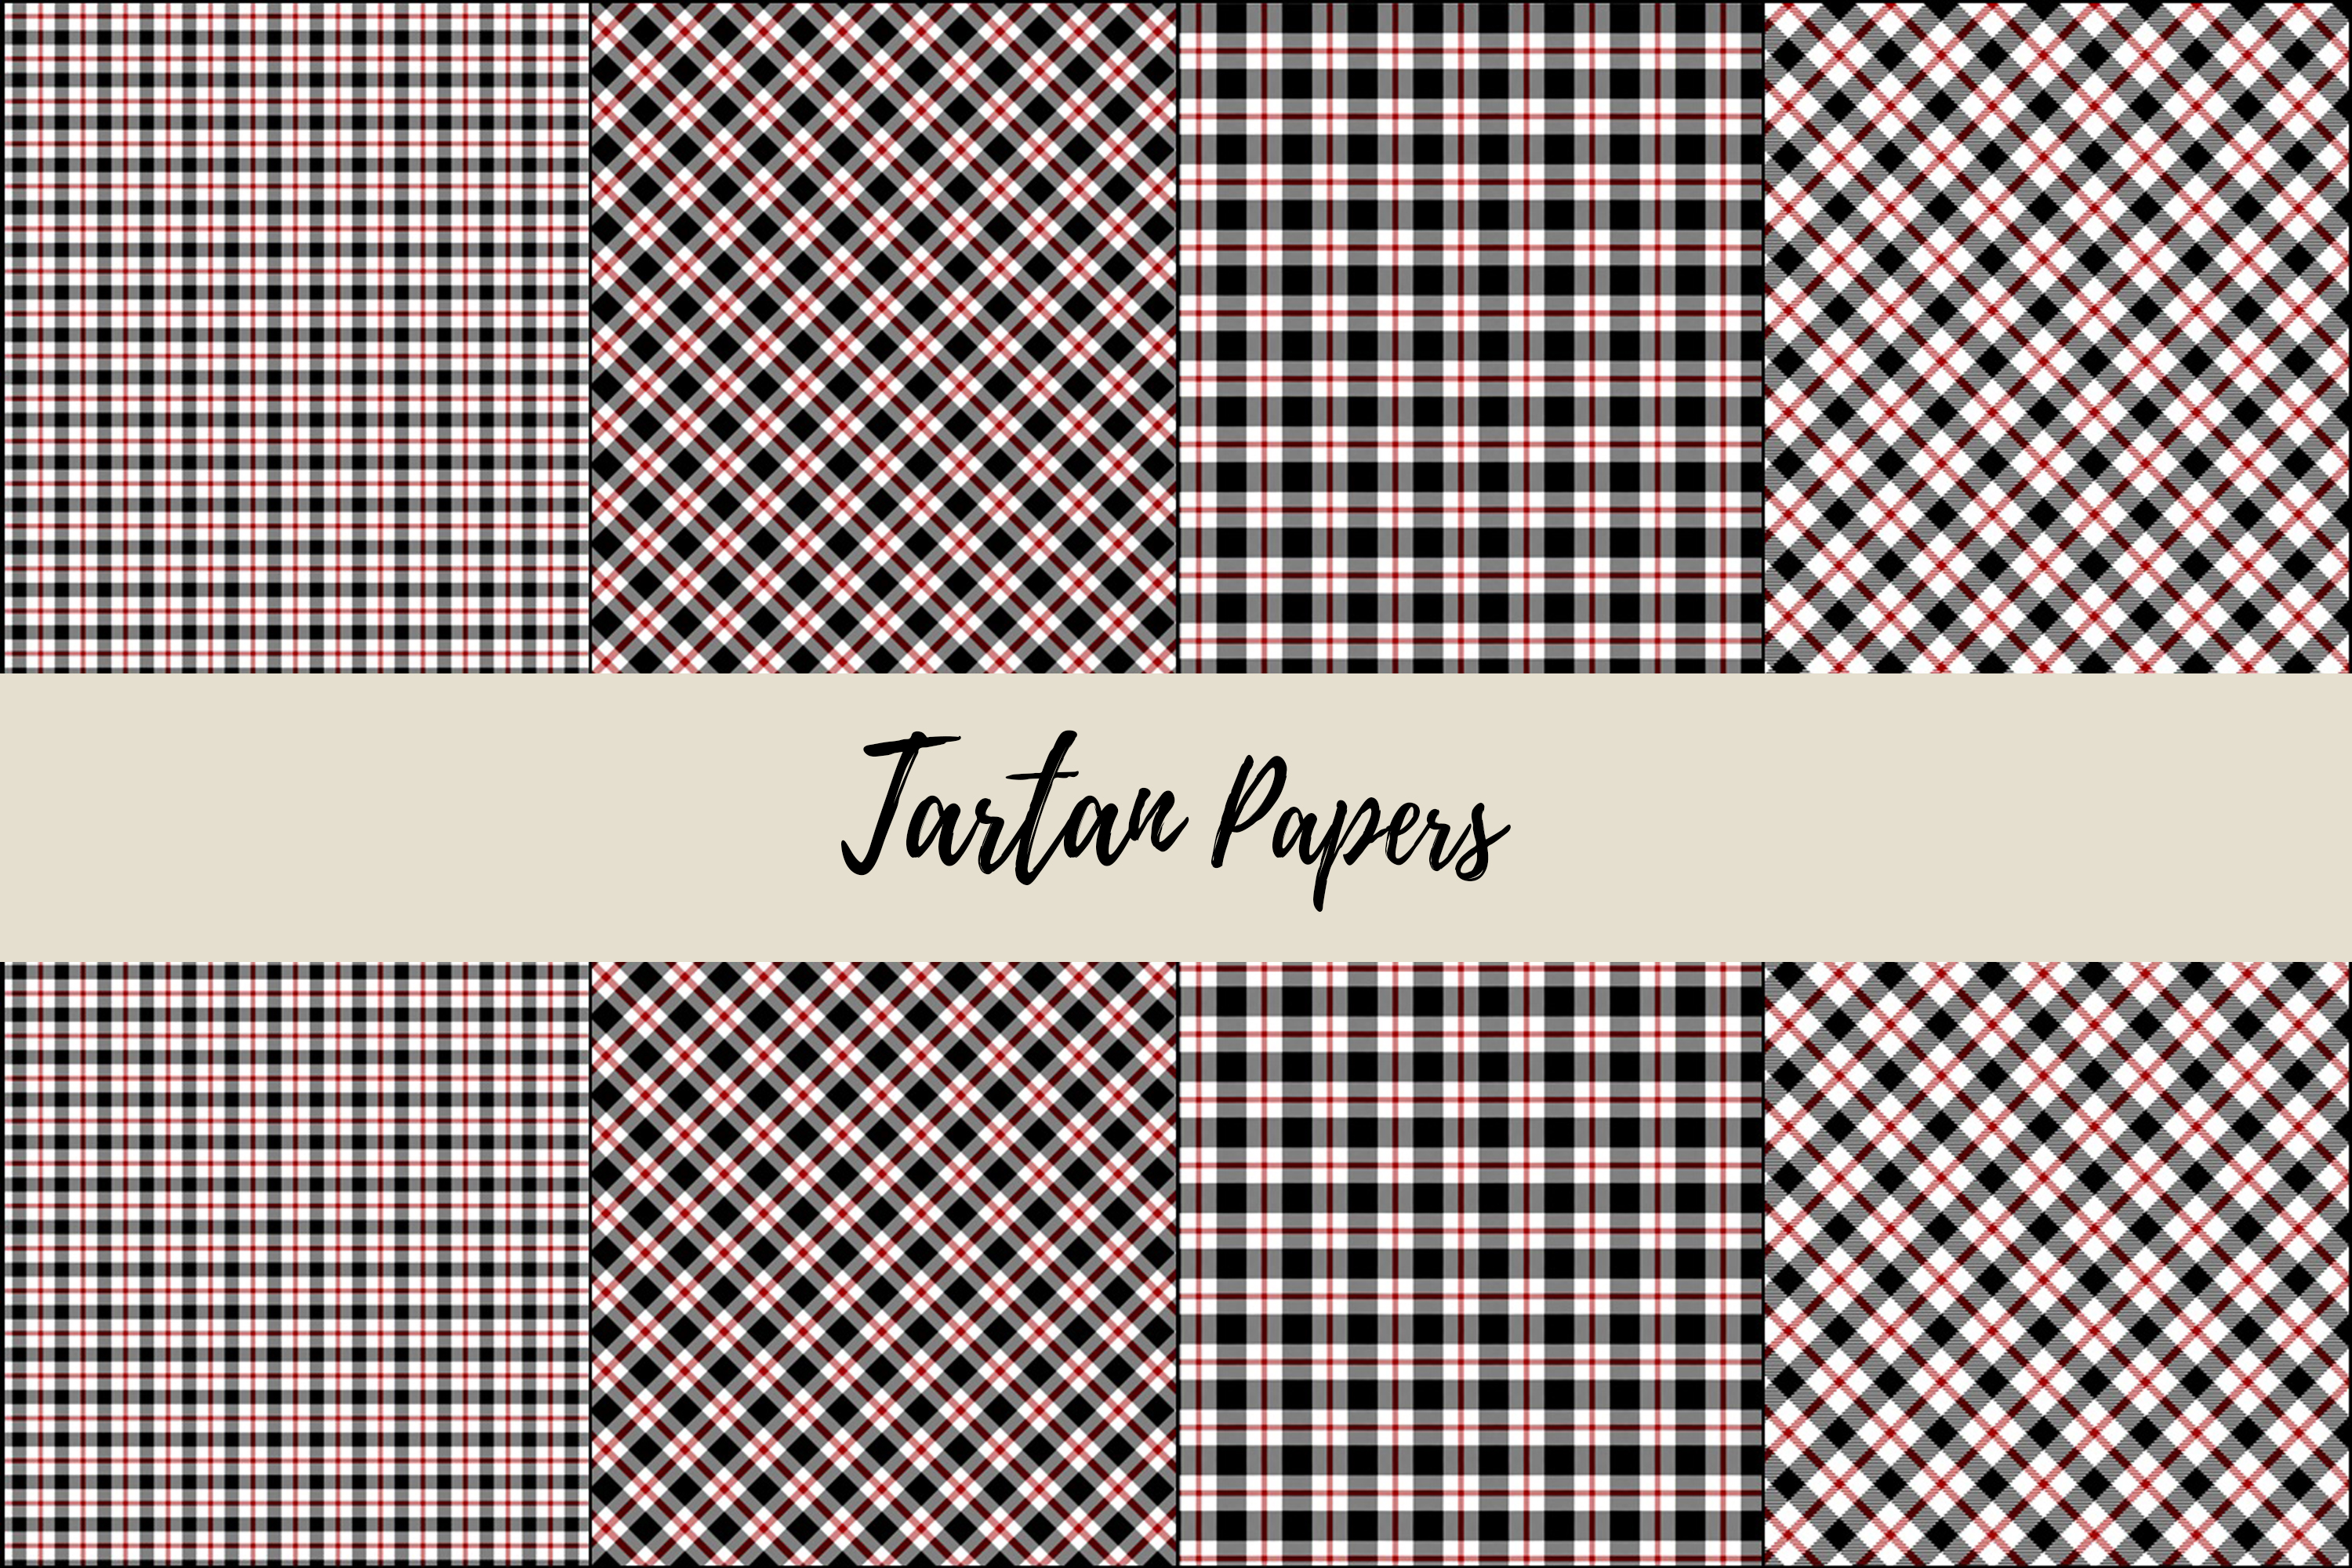 22 Black & Red Tartan Background Papers example image 7